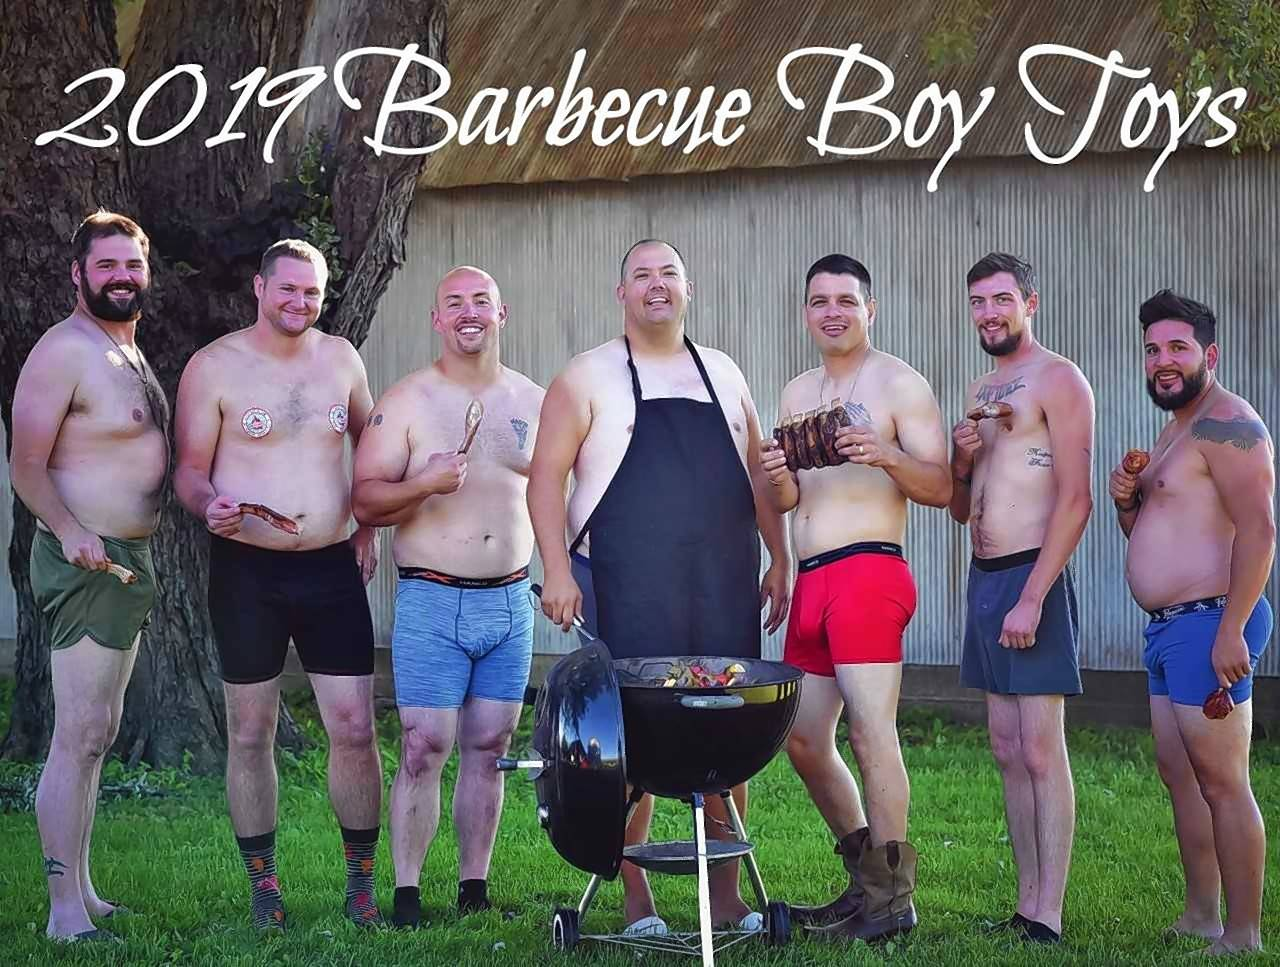 How BBQ sauces and 'dad bods' are helping support veterans